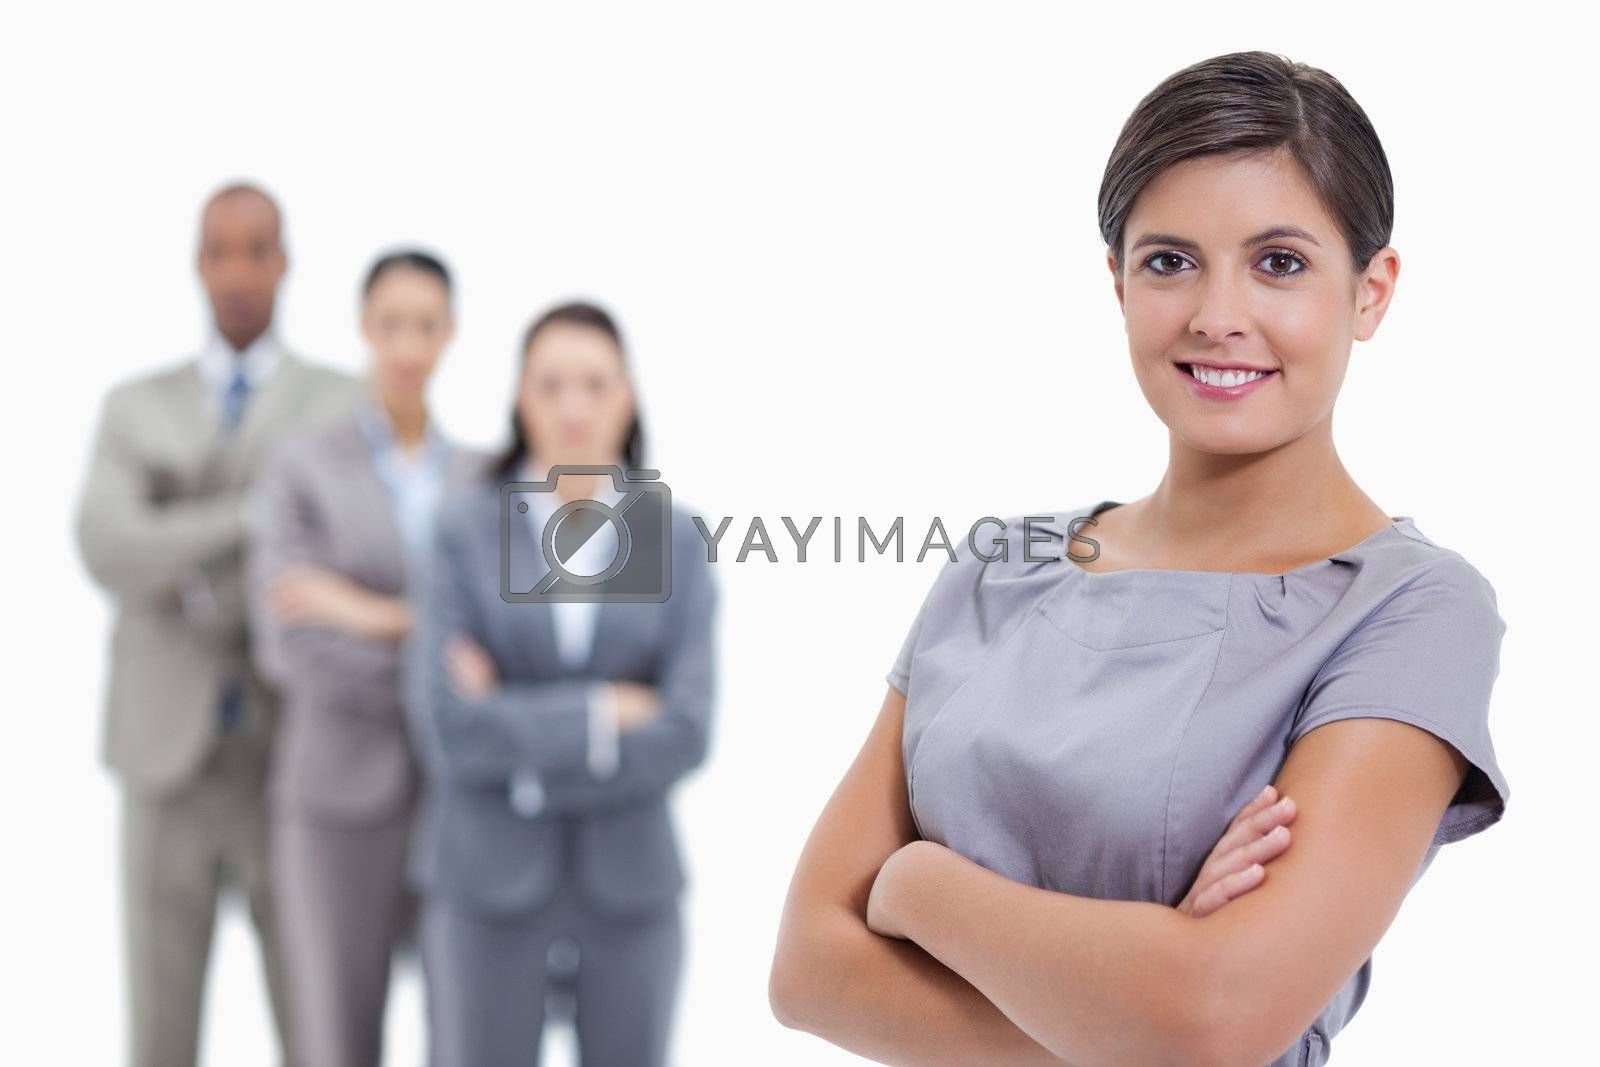 Close-up of a businesswoman smiling and a team crossing their arms against white background